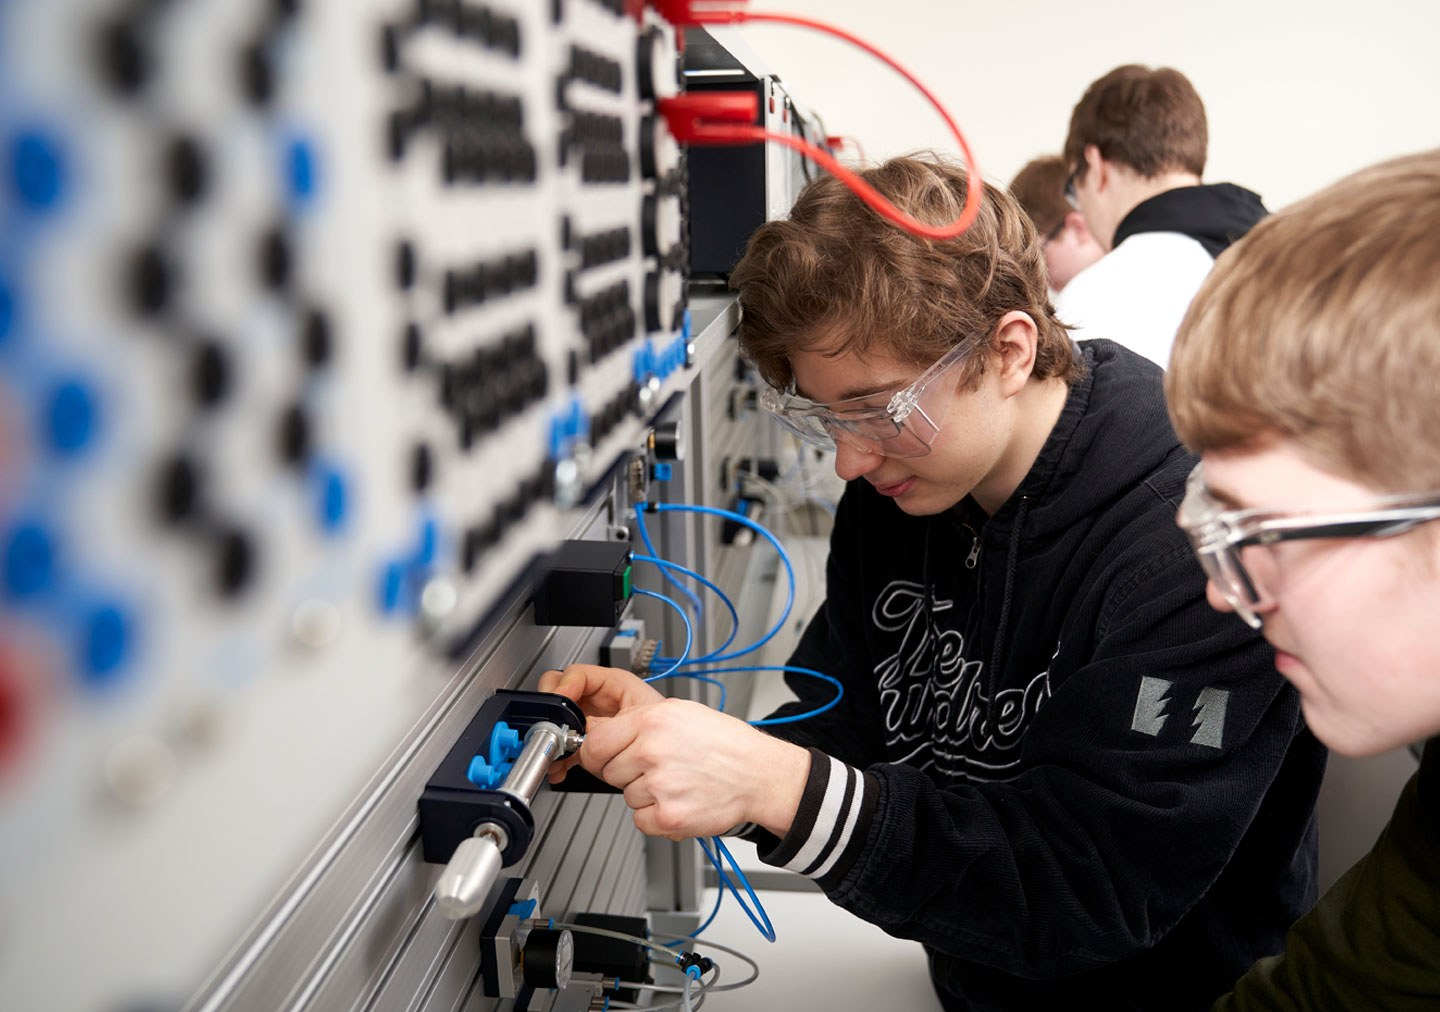 Students studying pneumatics systems